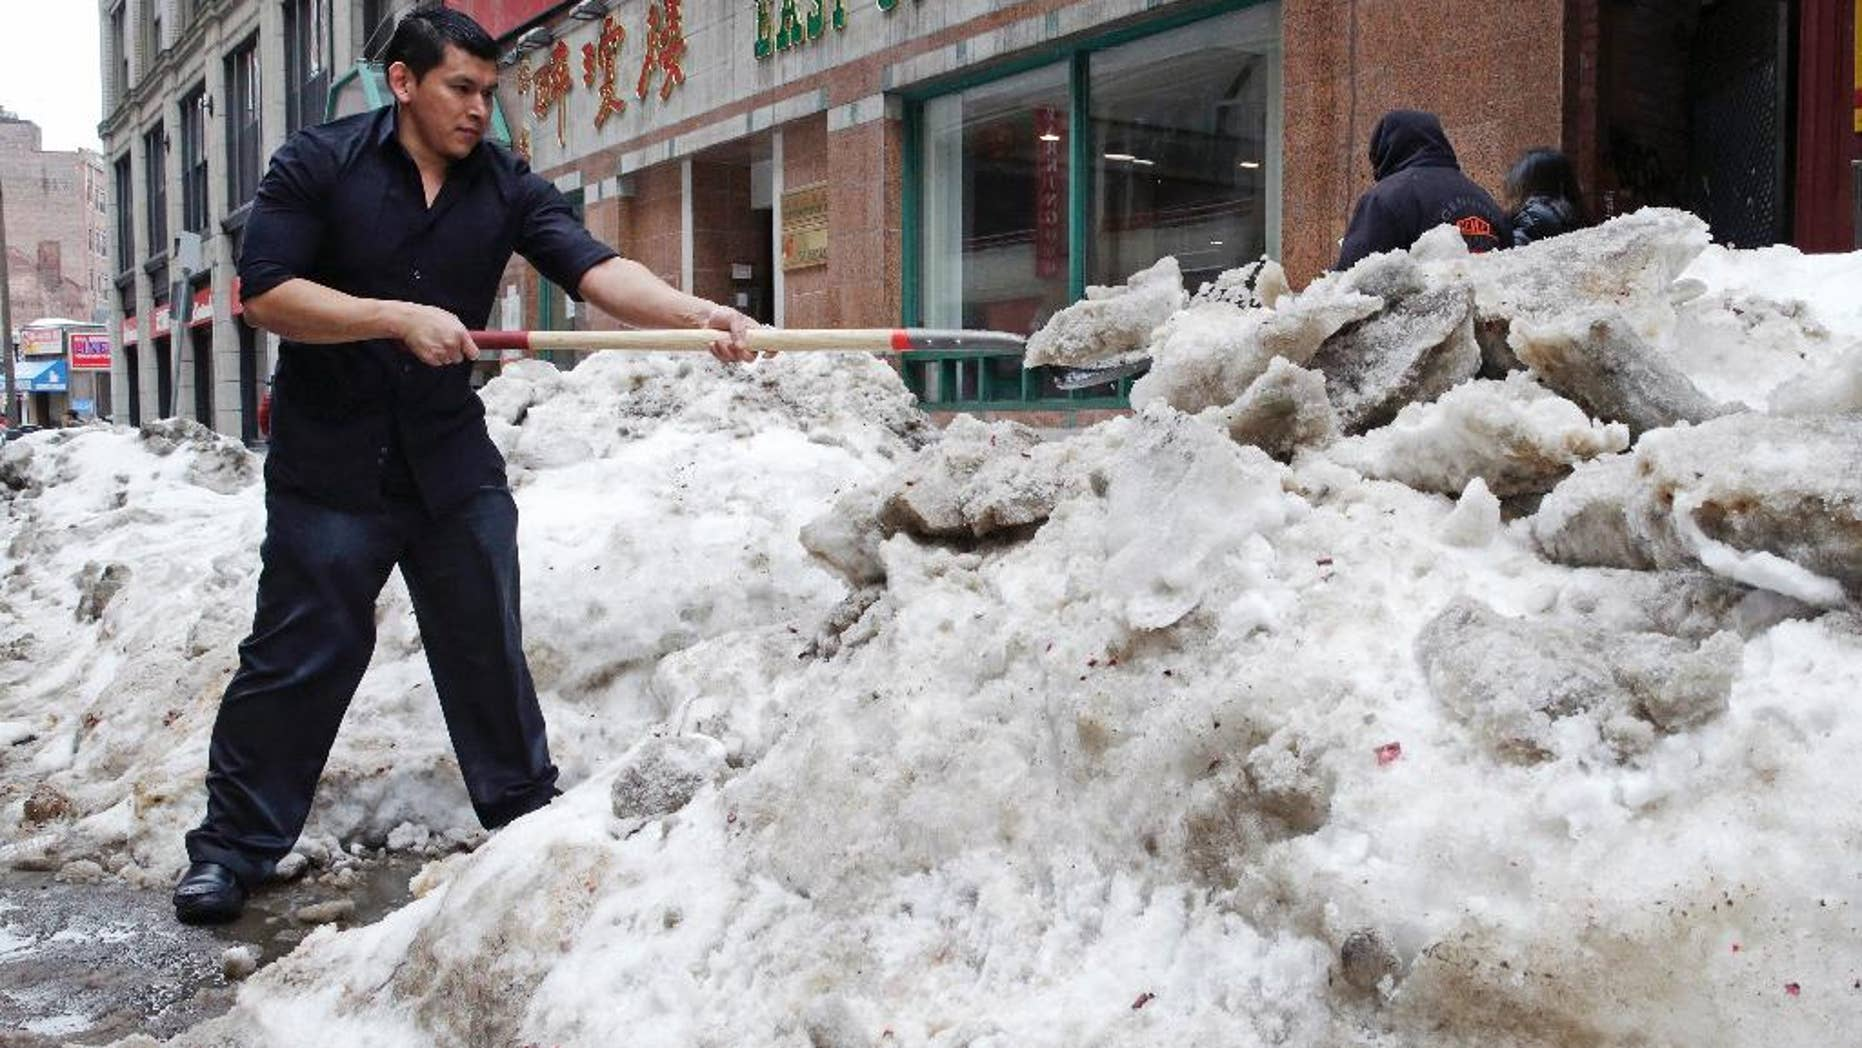 FILE - In this March 4, 2015 file photo, waiter Melvin Angel shovels snow outside the restaurant he works at in the Chinatown neighborhood of Boston.  Every work day lost during New England's historic winter has meant millions of dollars out of the regional economy. Retailers and restaurants were among the hardest hit, but hotels, transportation companies and other tourism businesses struggled too. (AP Photo/Charles Krupa)